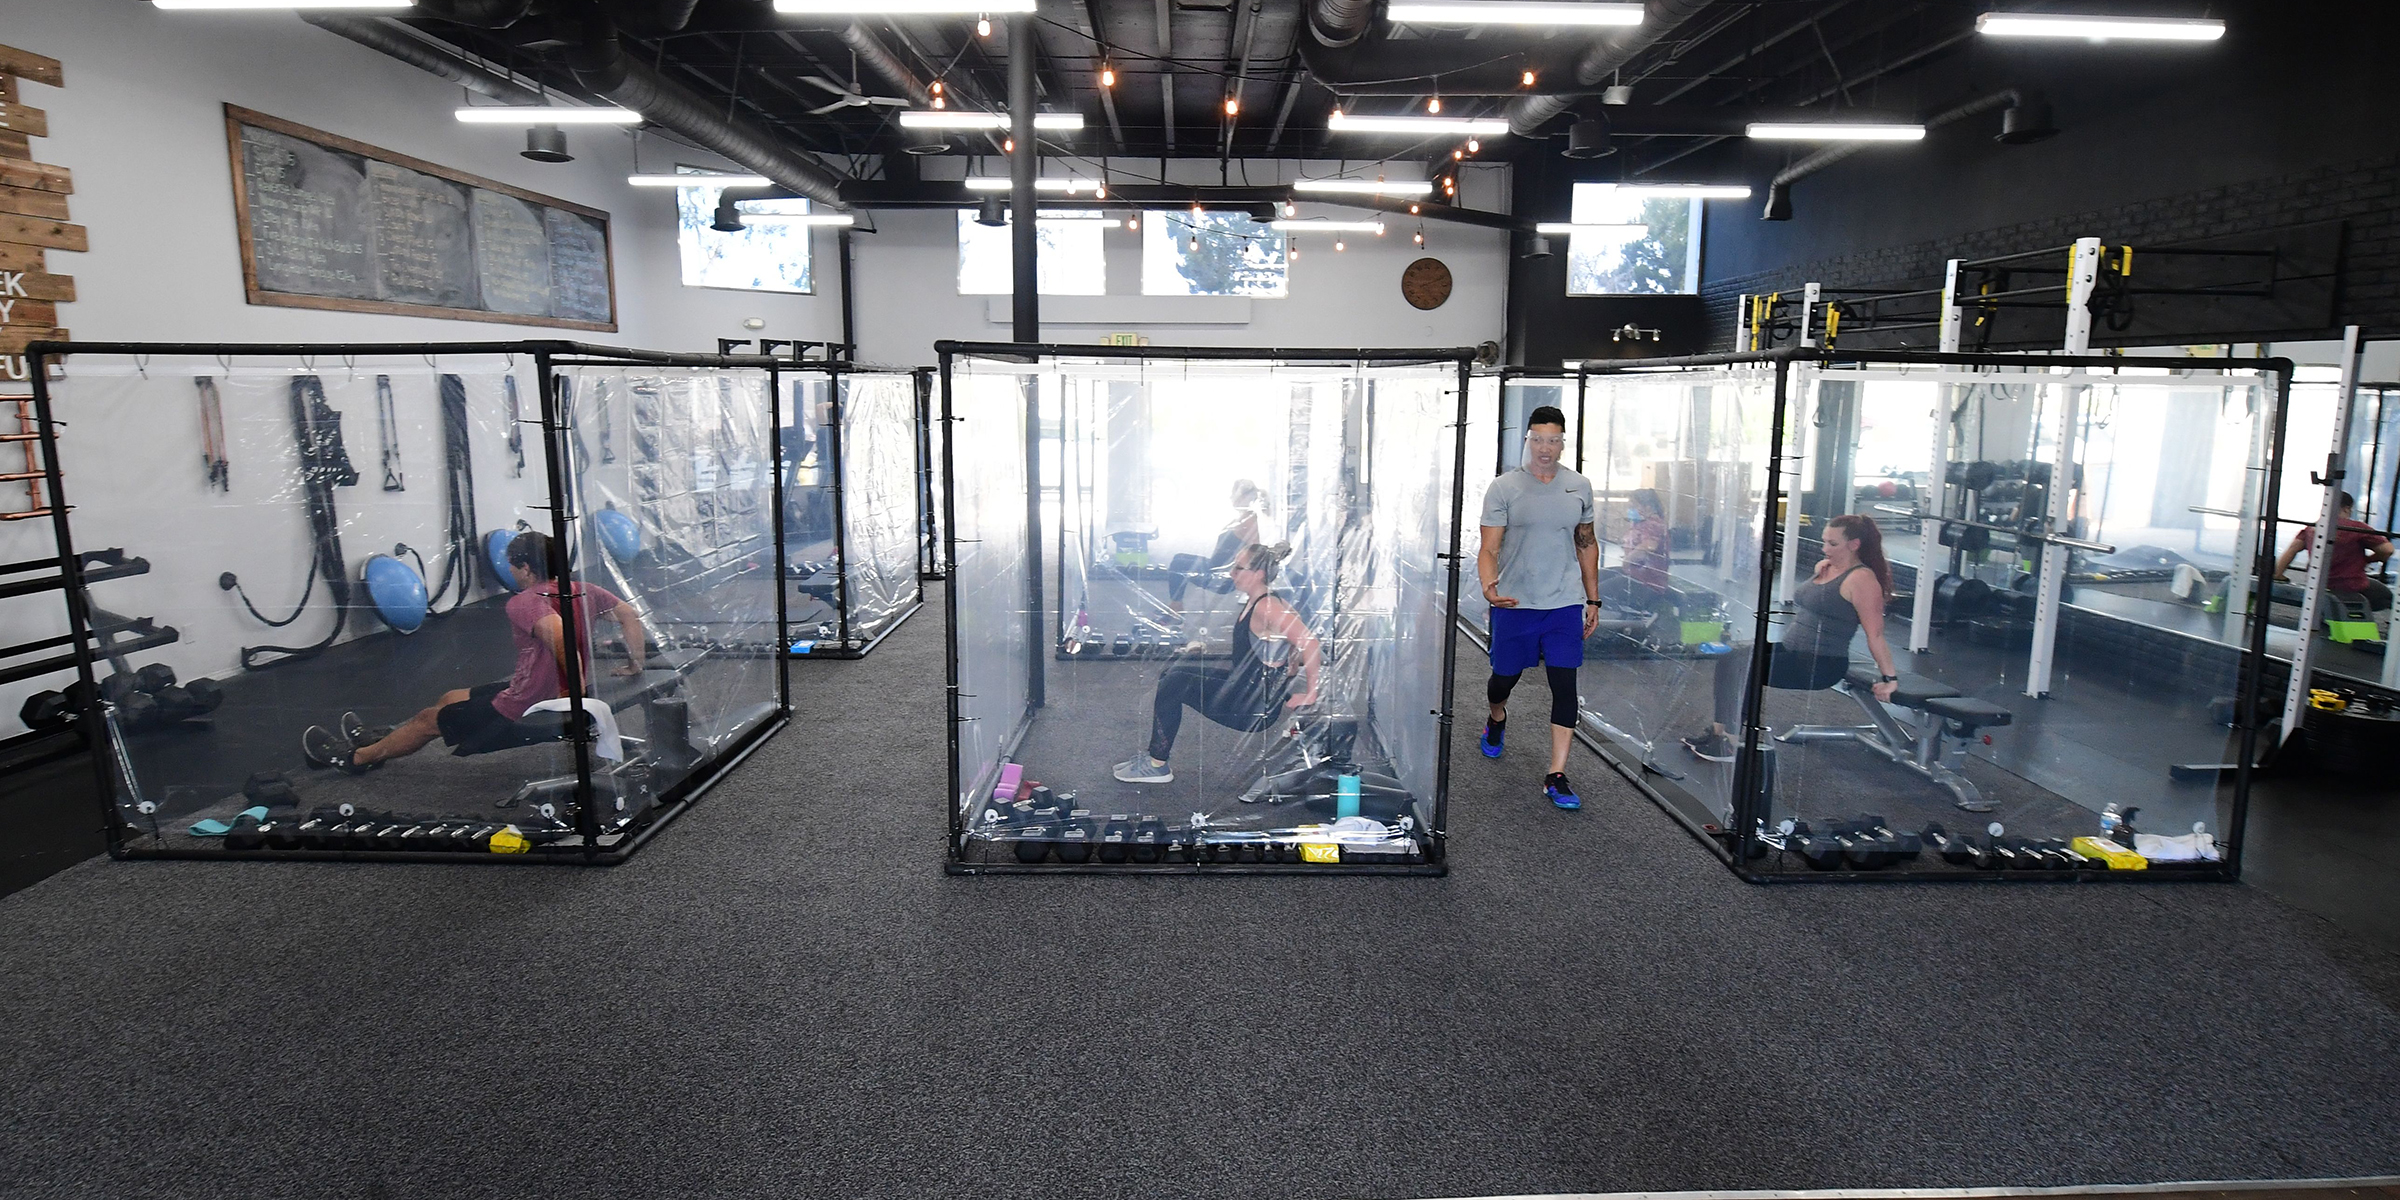 gym debuts workout pods made from shower curtains as chains increase sanitation